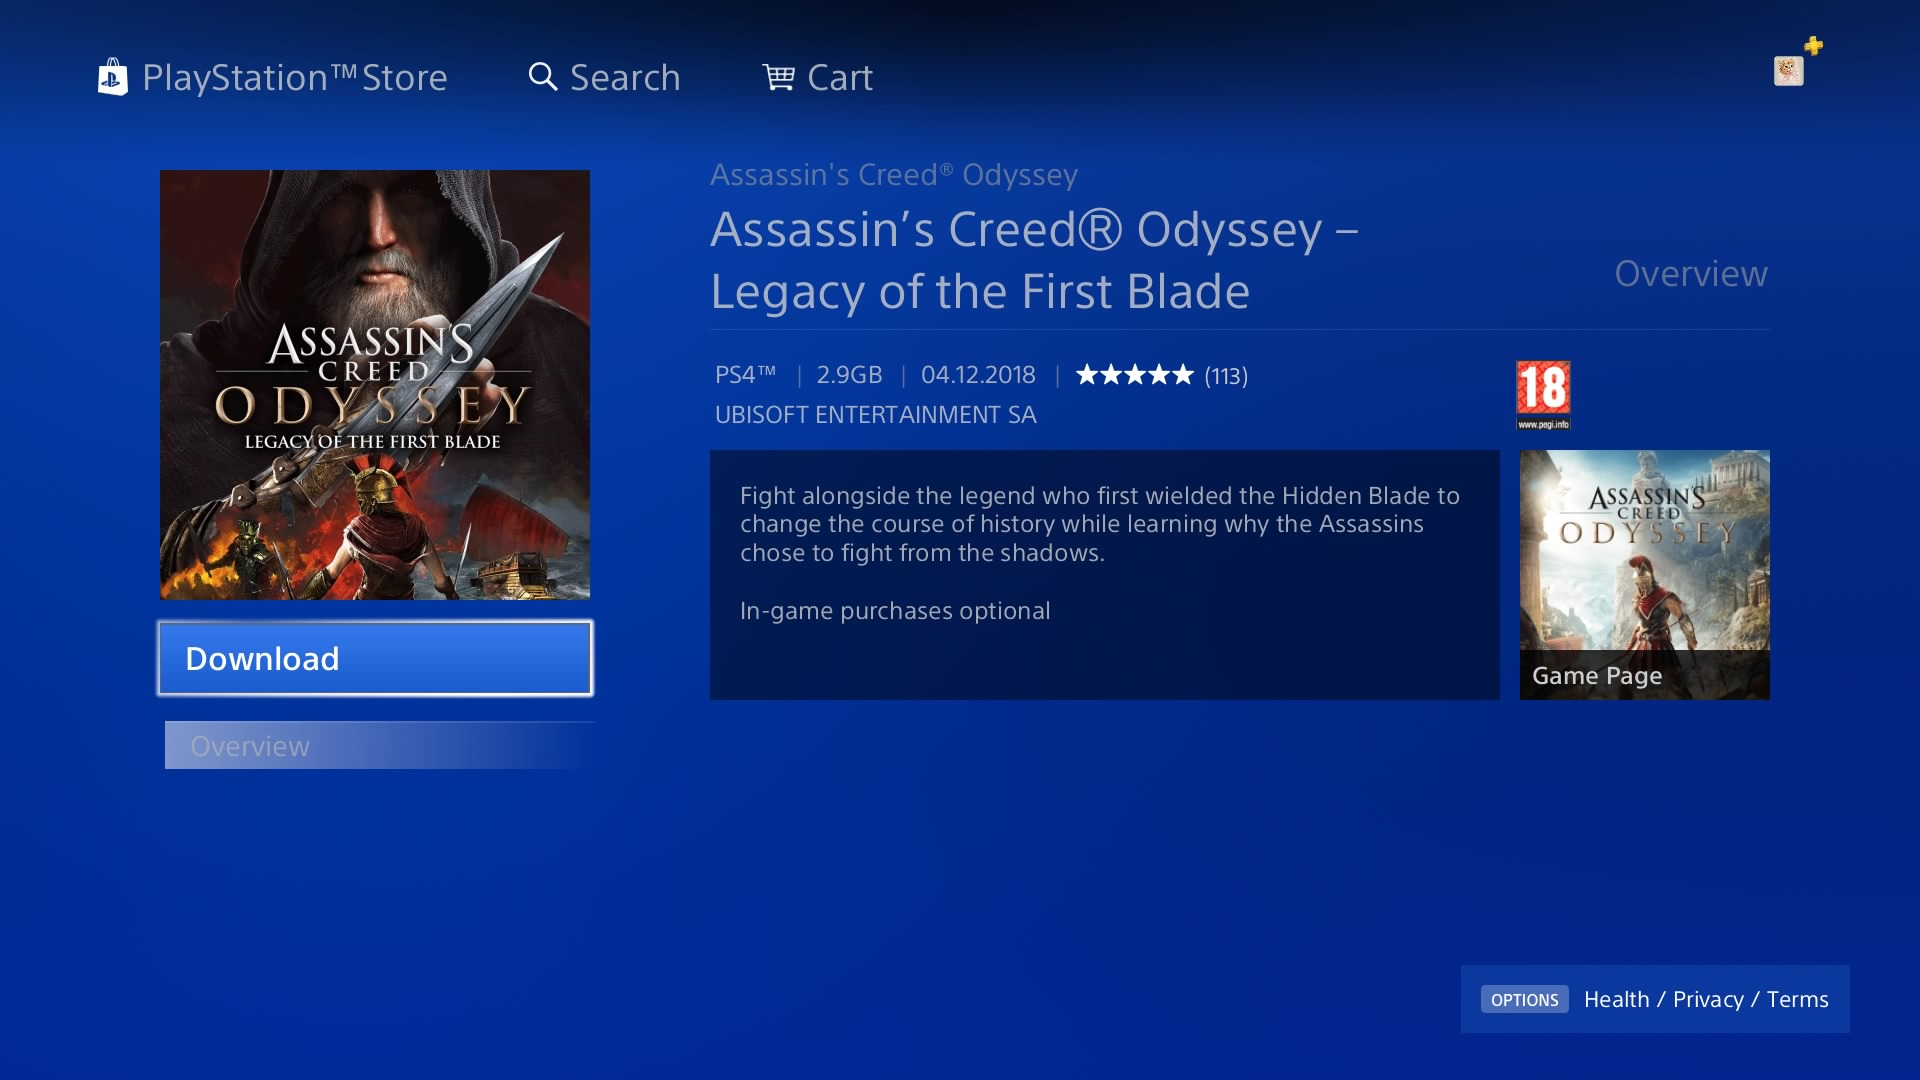 How To Start The Assassin S Creed Odyssey Legacy Of The First